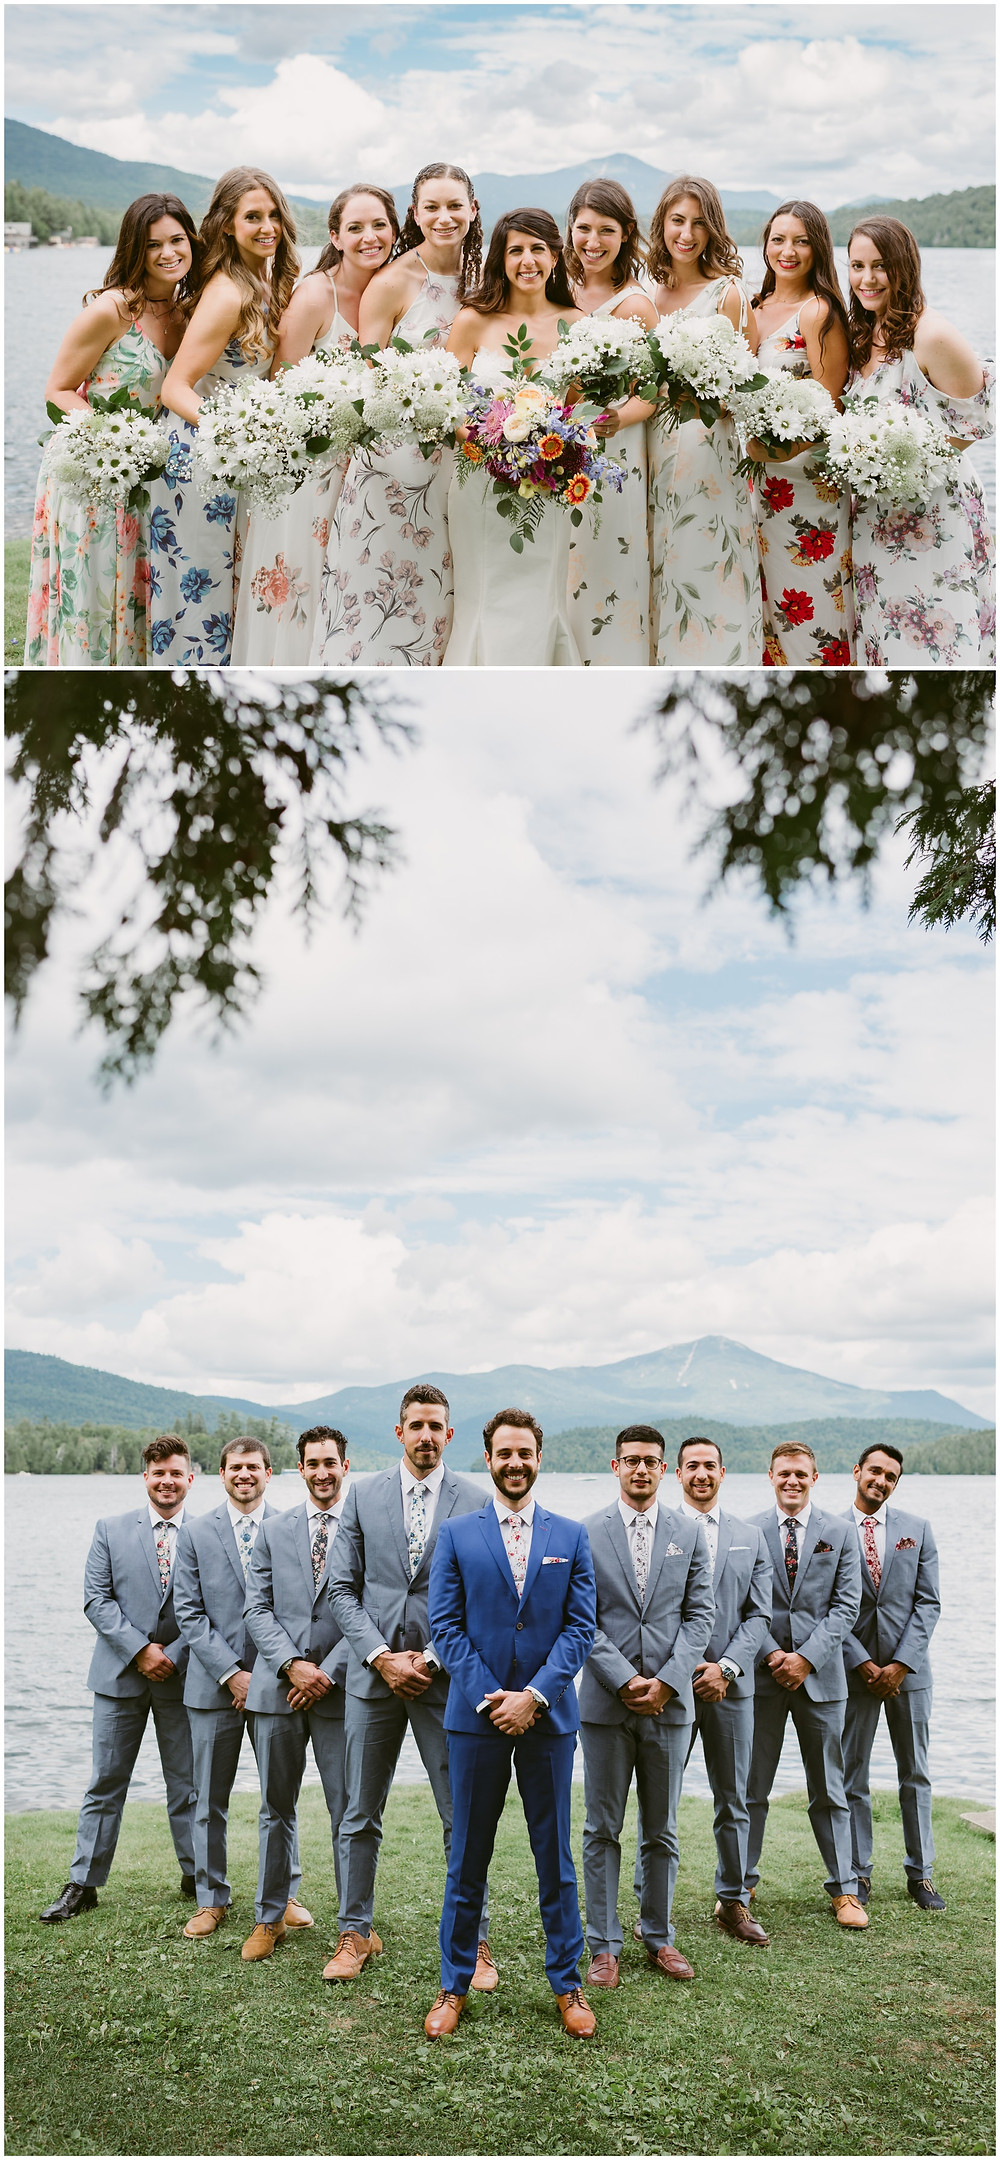 Outdoor Alaskan wedding photographer